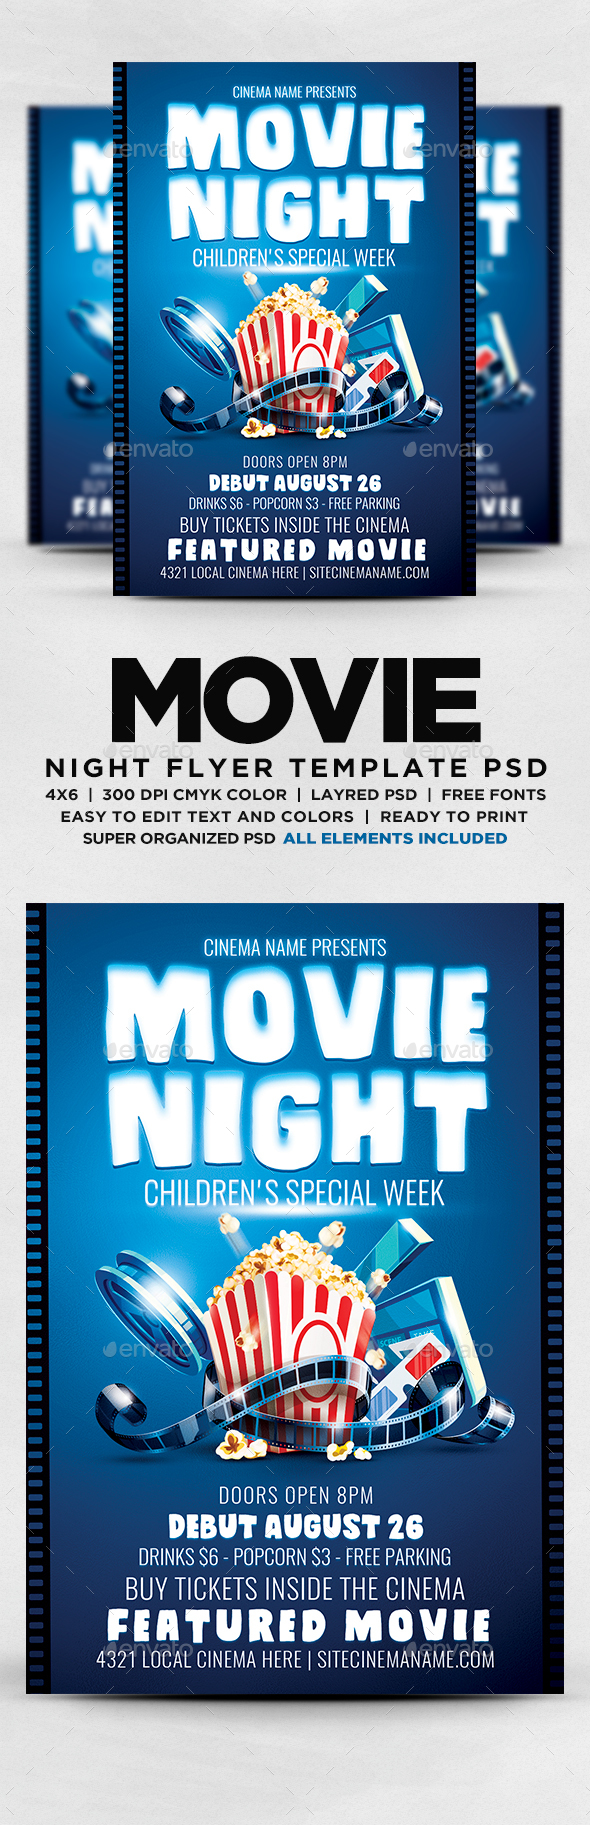 Night Childrens Special Week Flyer